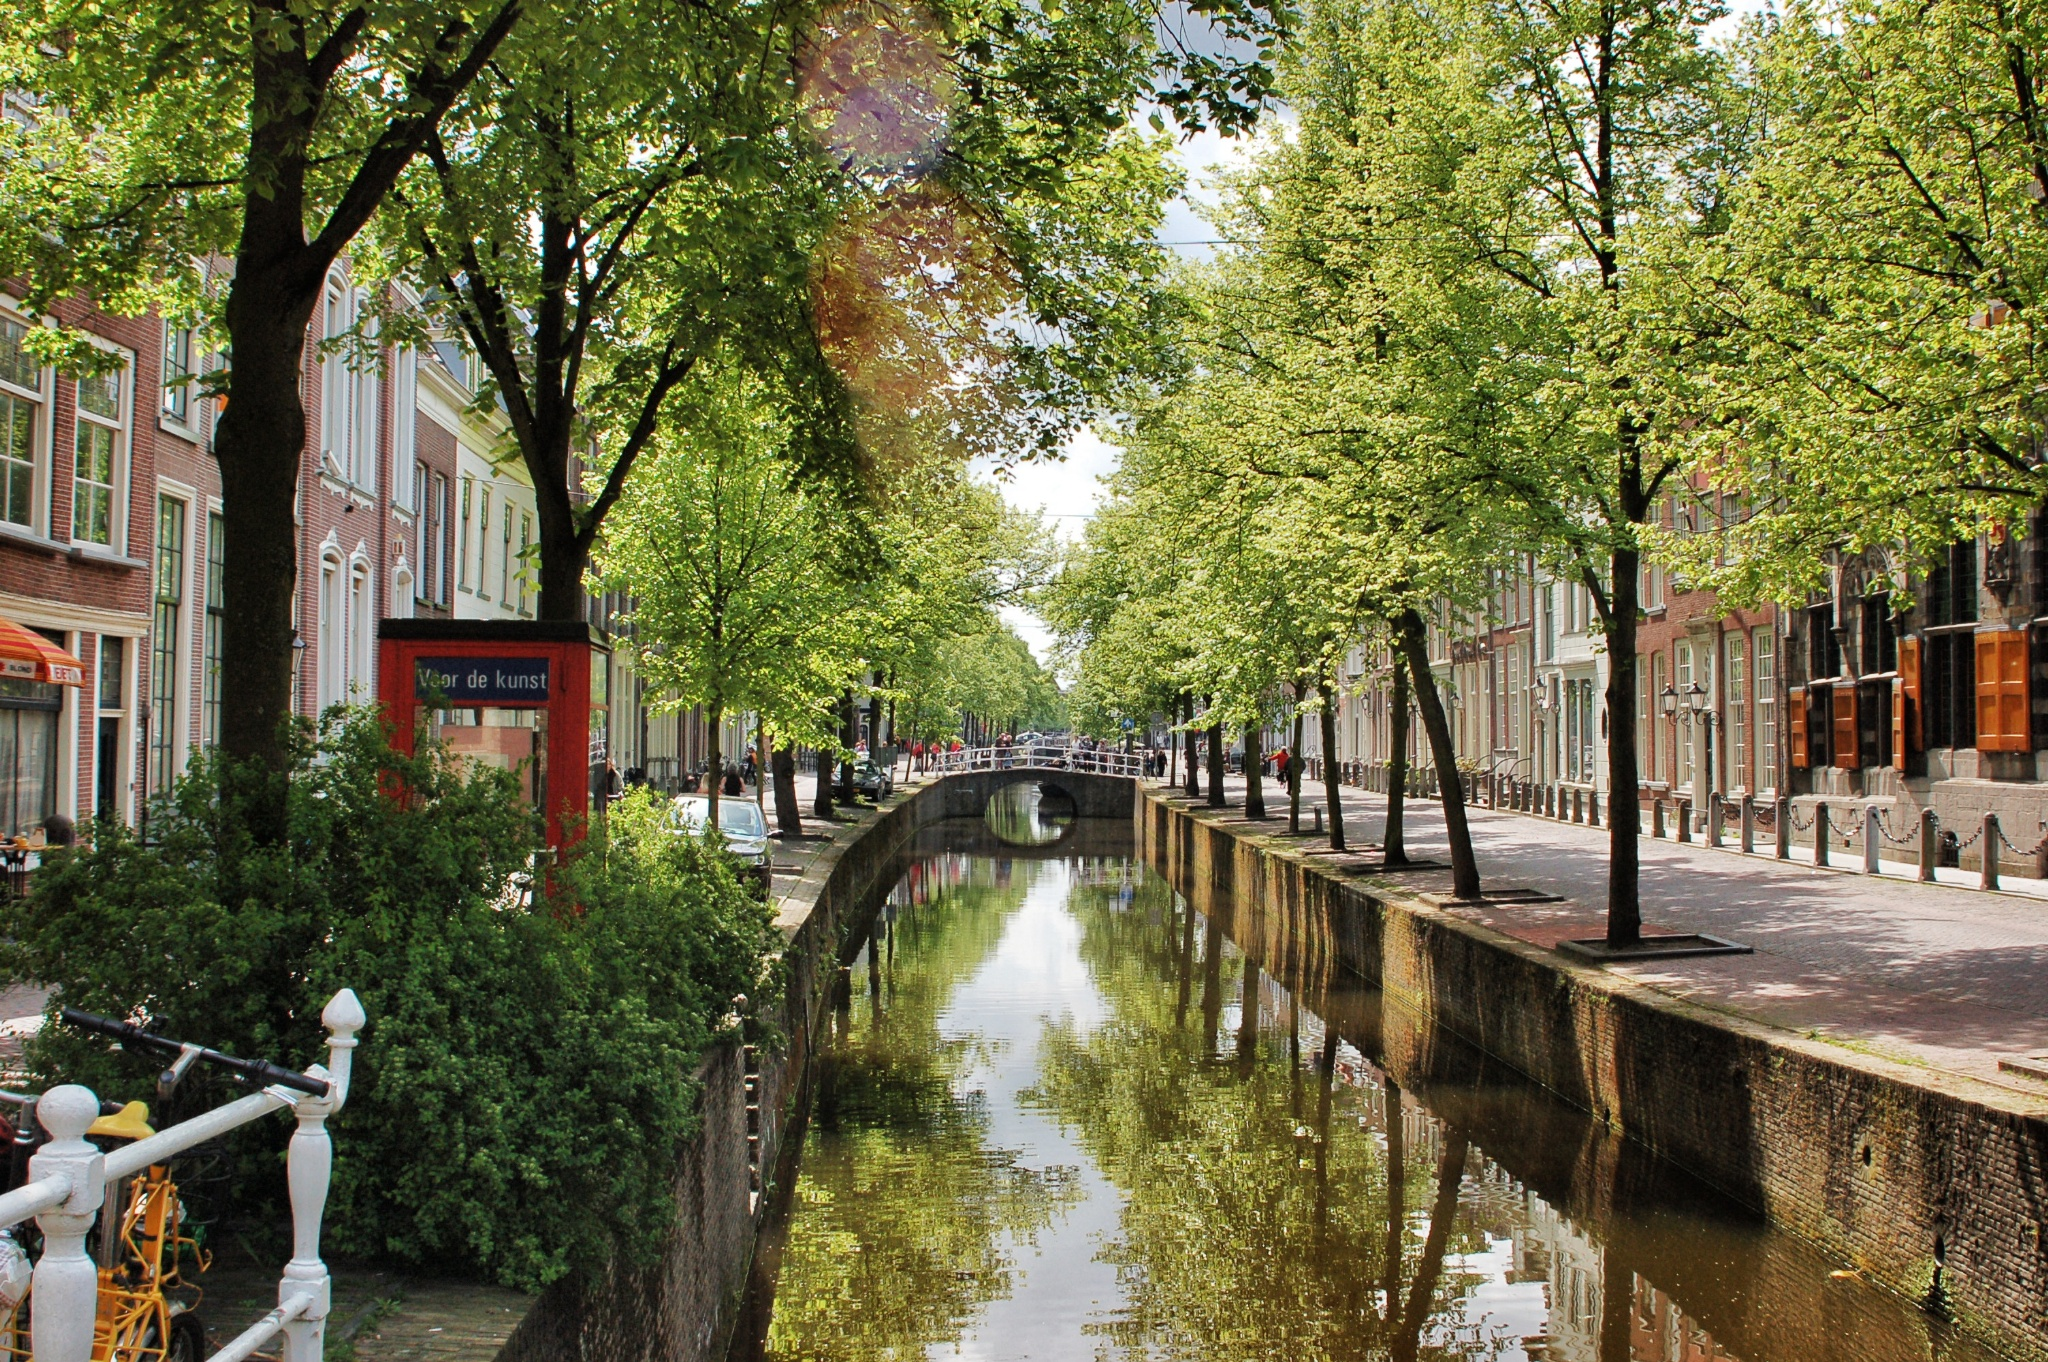 One of the many canals in Delft